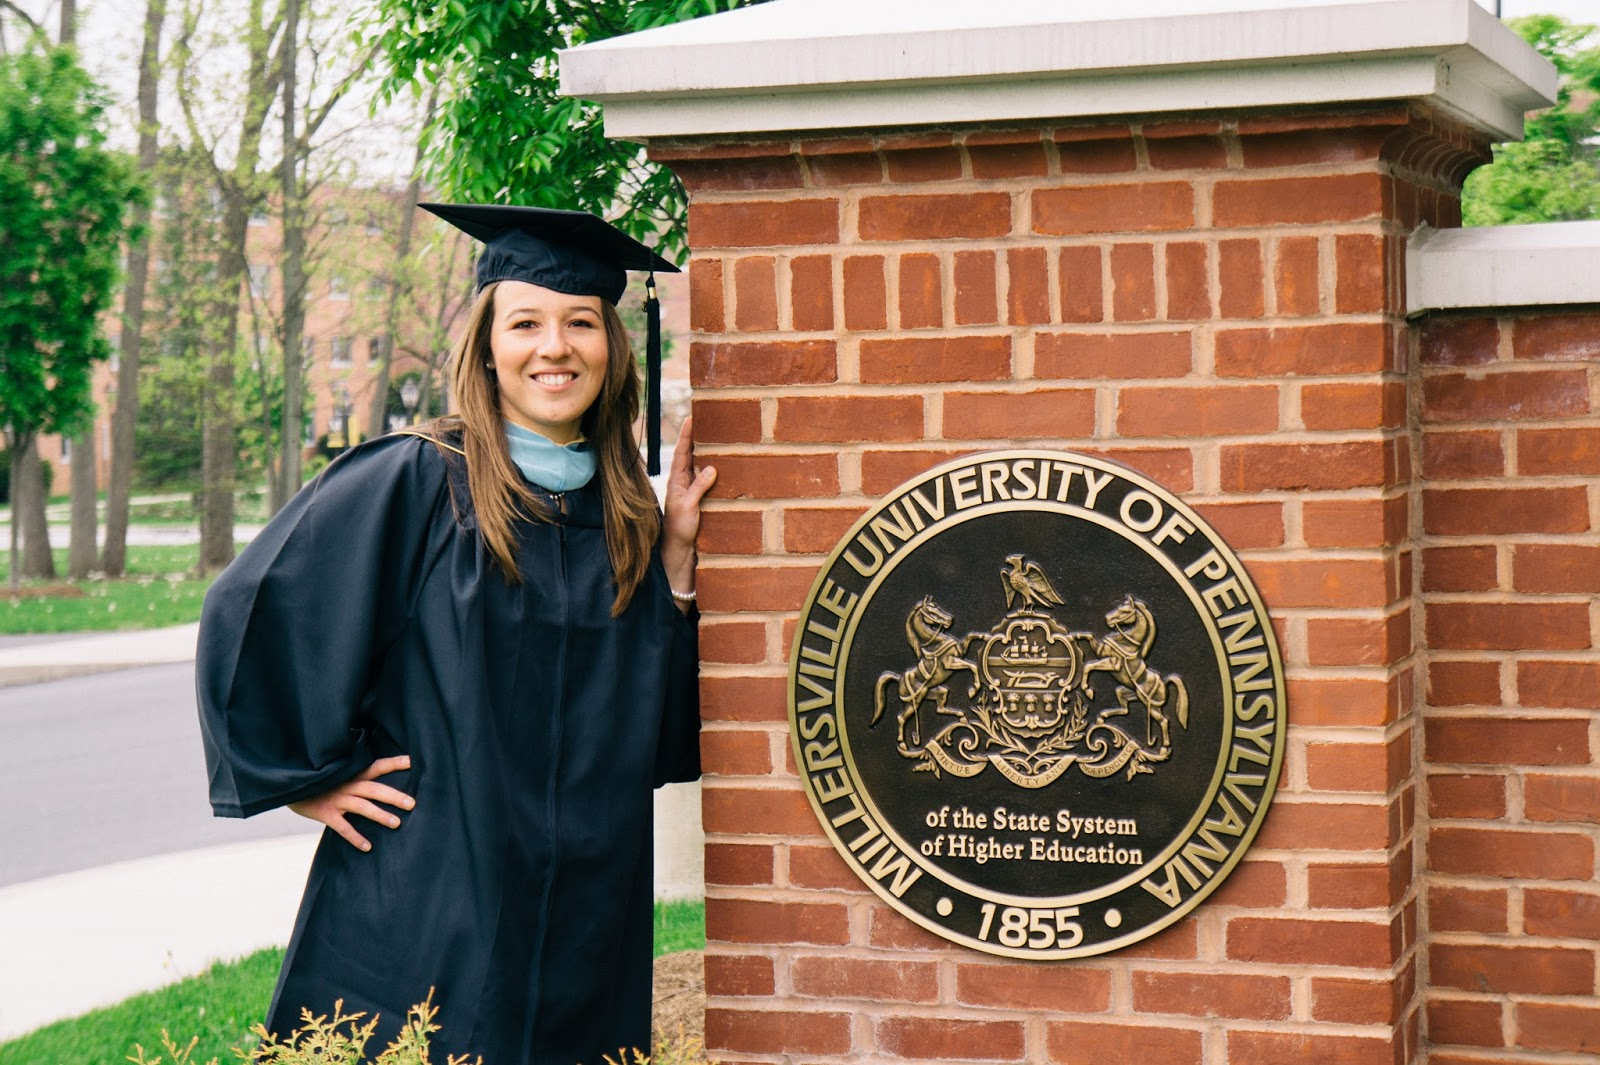 Graduate in her cap and gown standing next to the seal of Millersville University